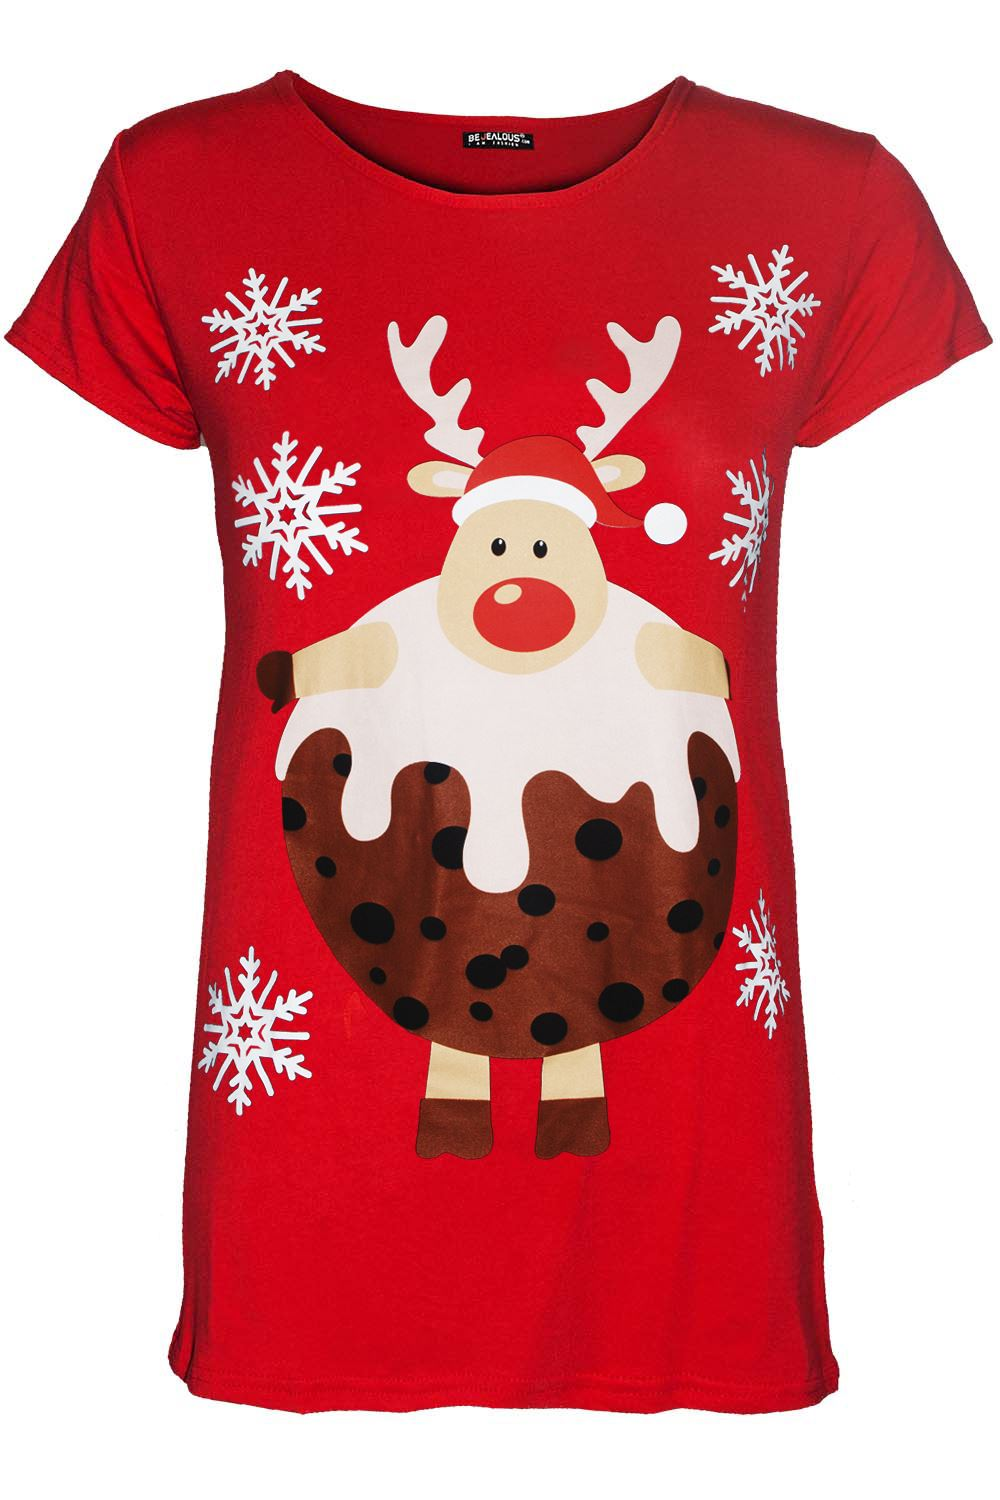 Kids Girls Christmas Pullover Heart Ribbon Santa Suit Costume T Shirt Tee Top